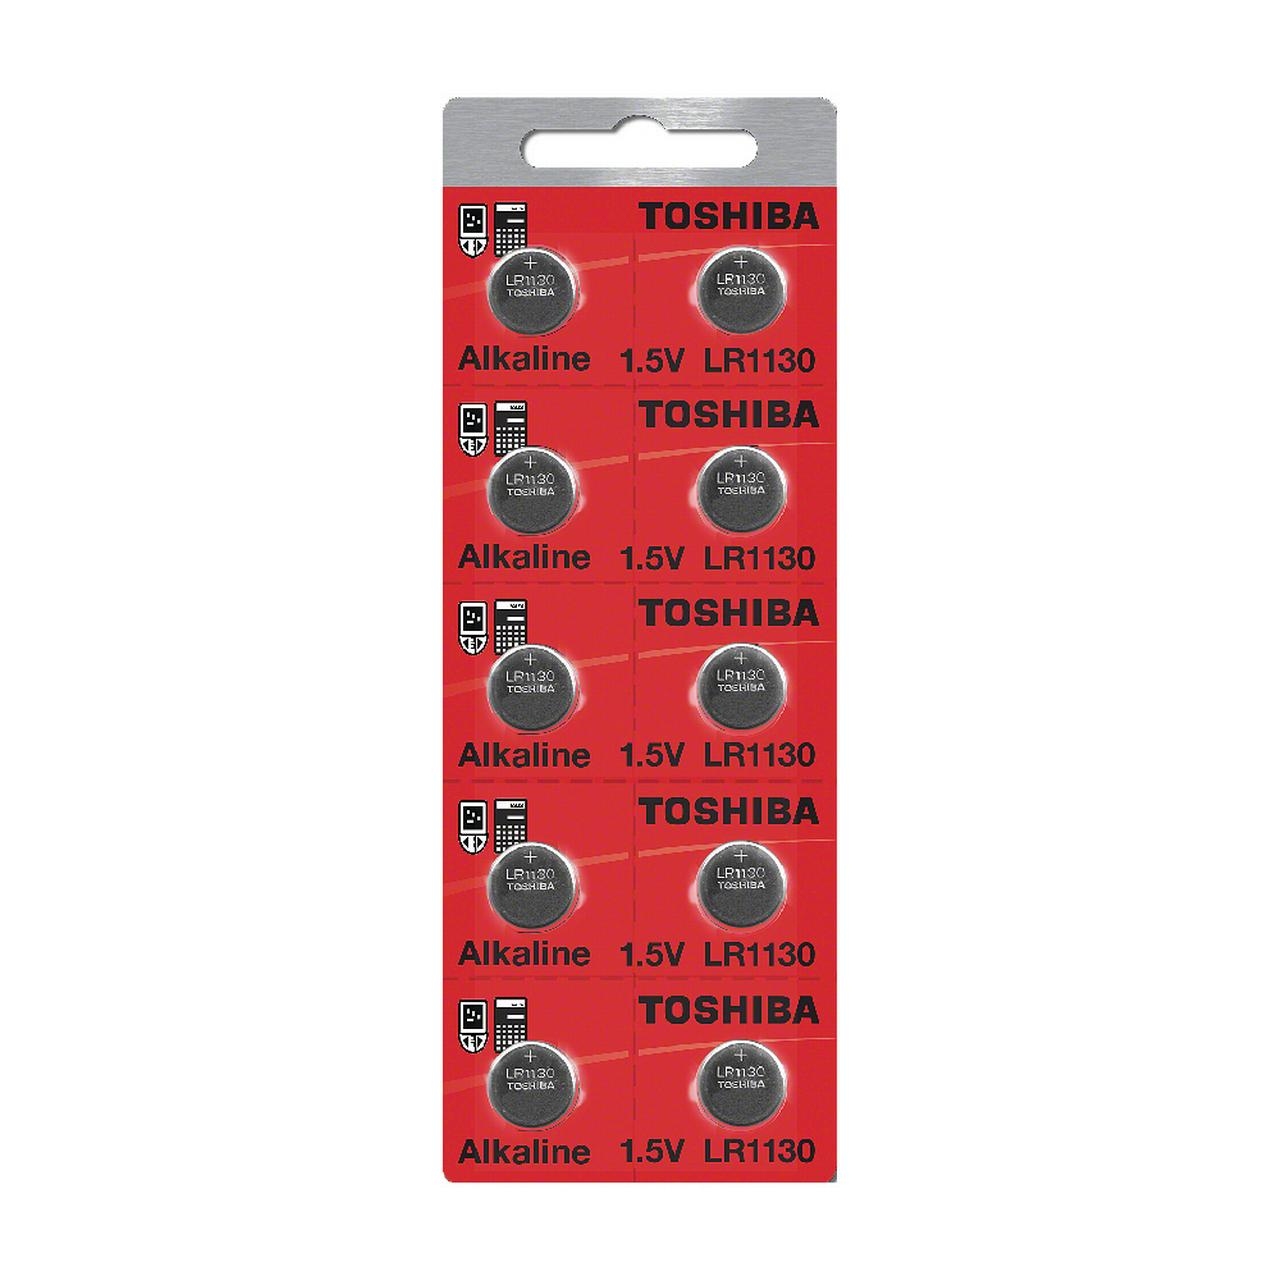 Toshiba 1130 189 Alkaline 1.5 Volt Batteries 10 Count